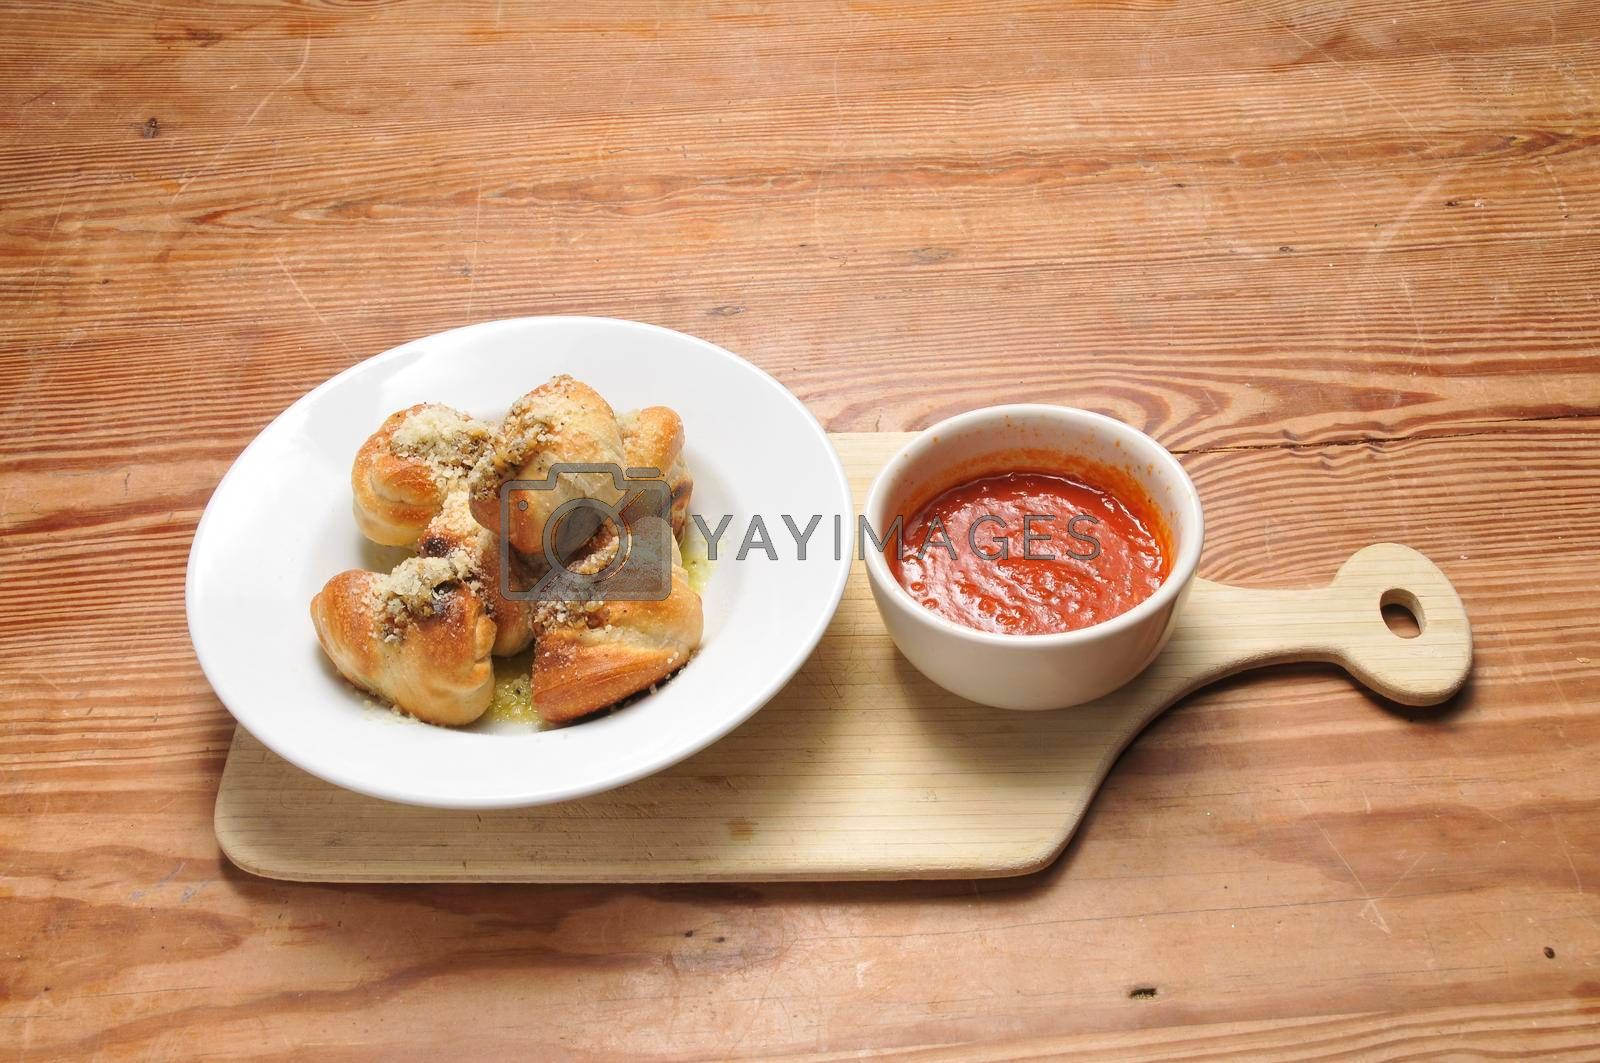 Authentic Italian cuisine known as garlic knots